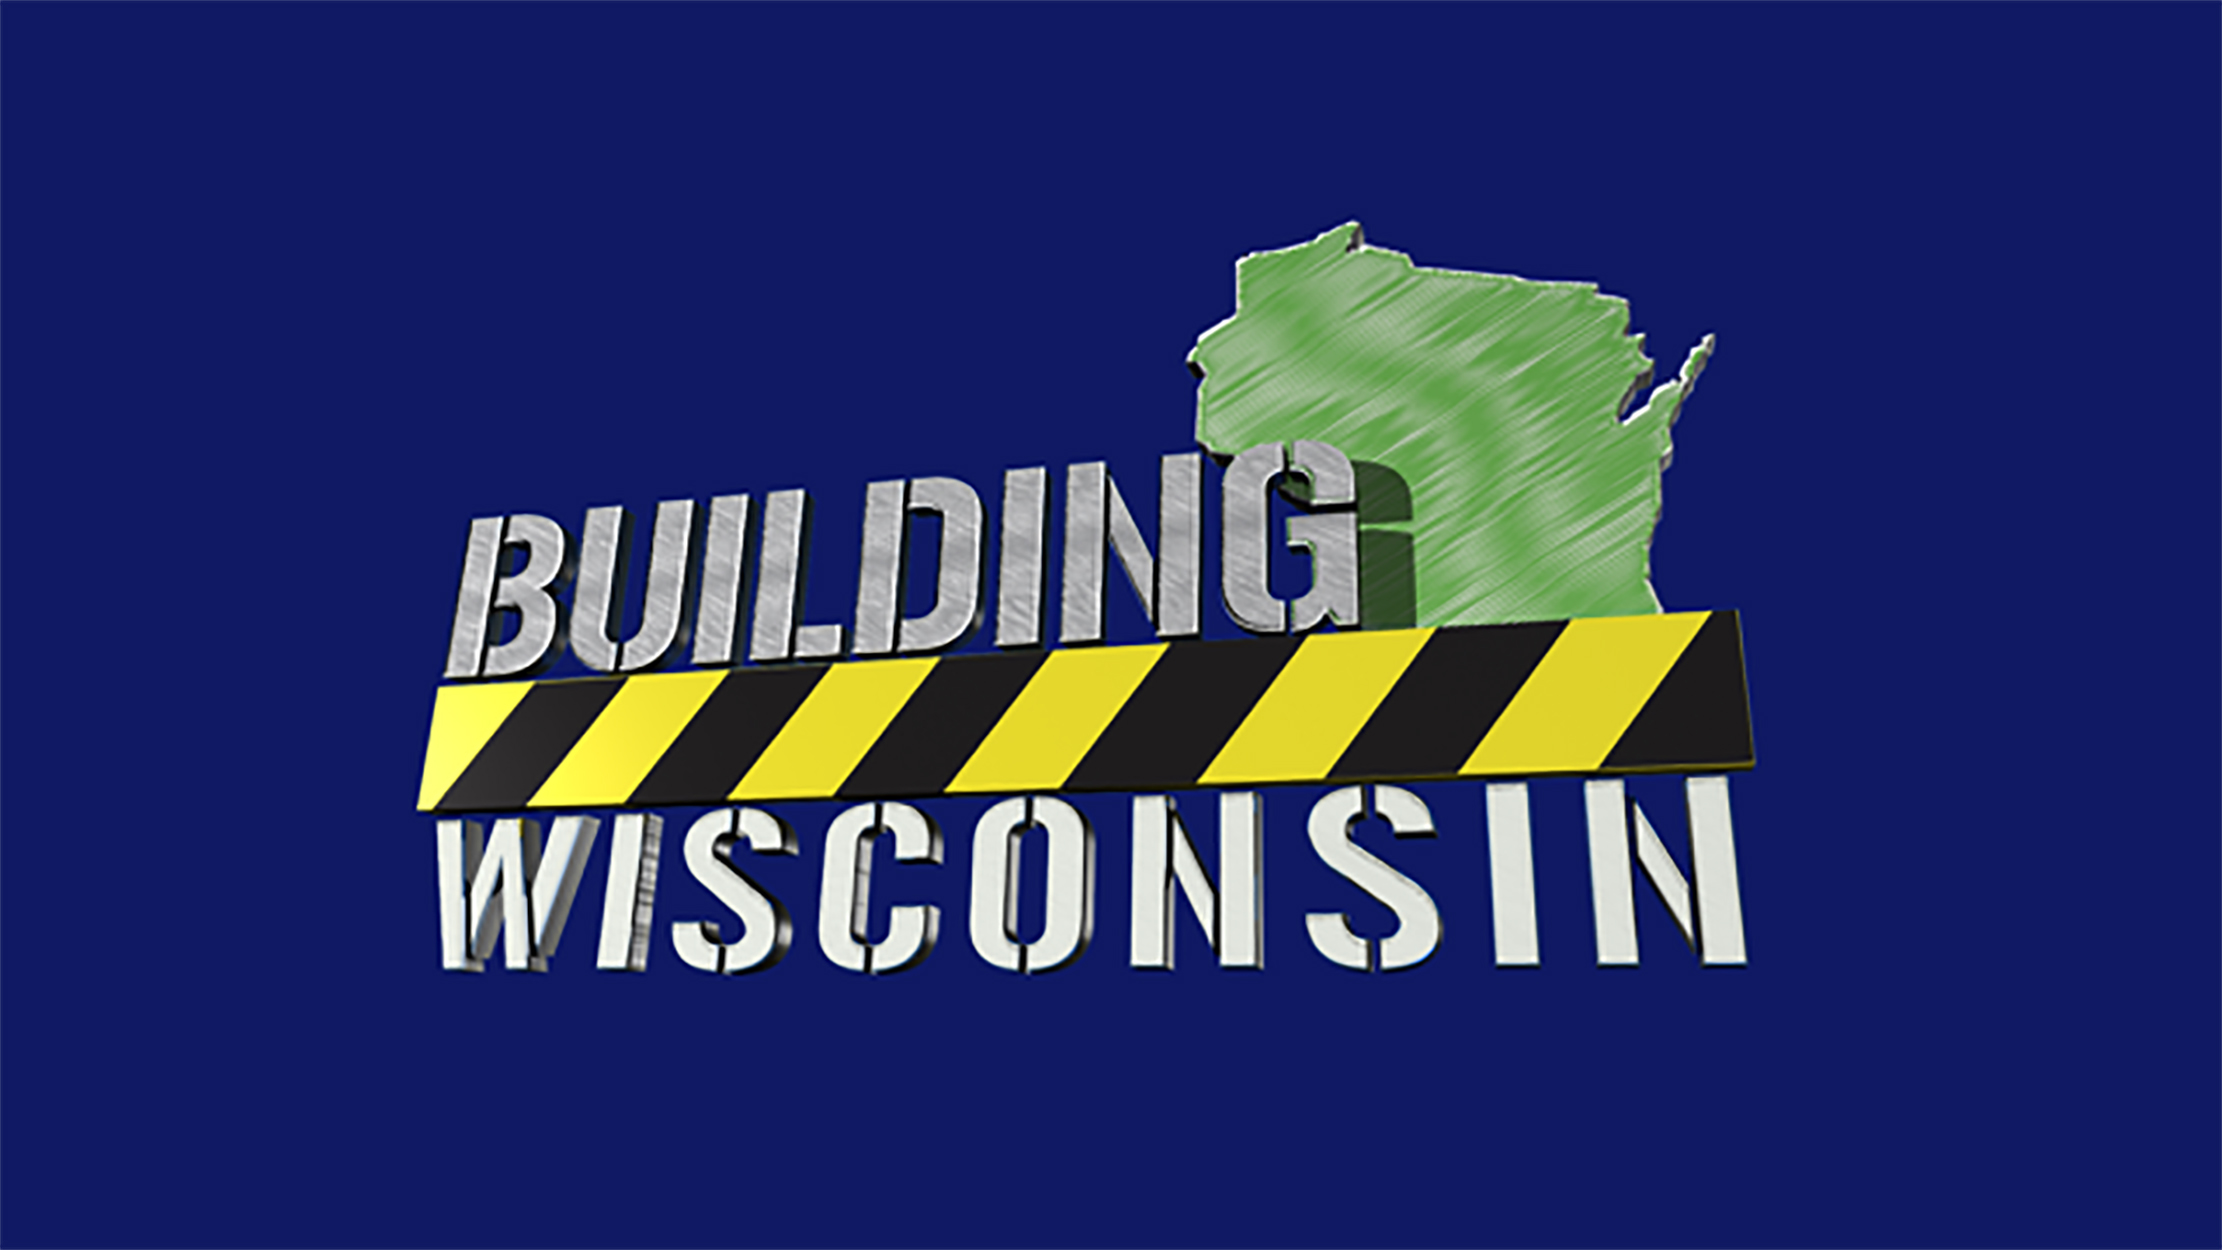 Available Now: Building Wisconsin Episode Highlighting Local